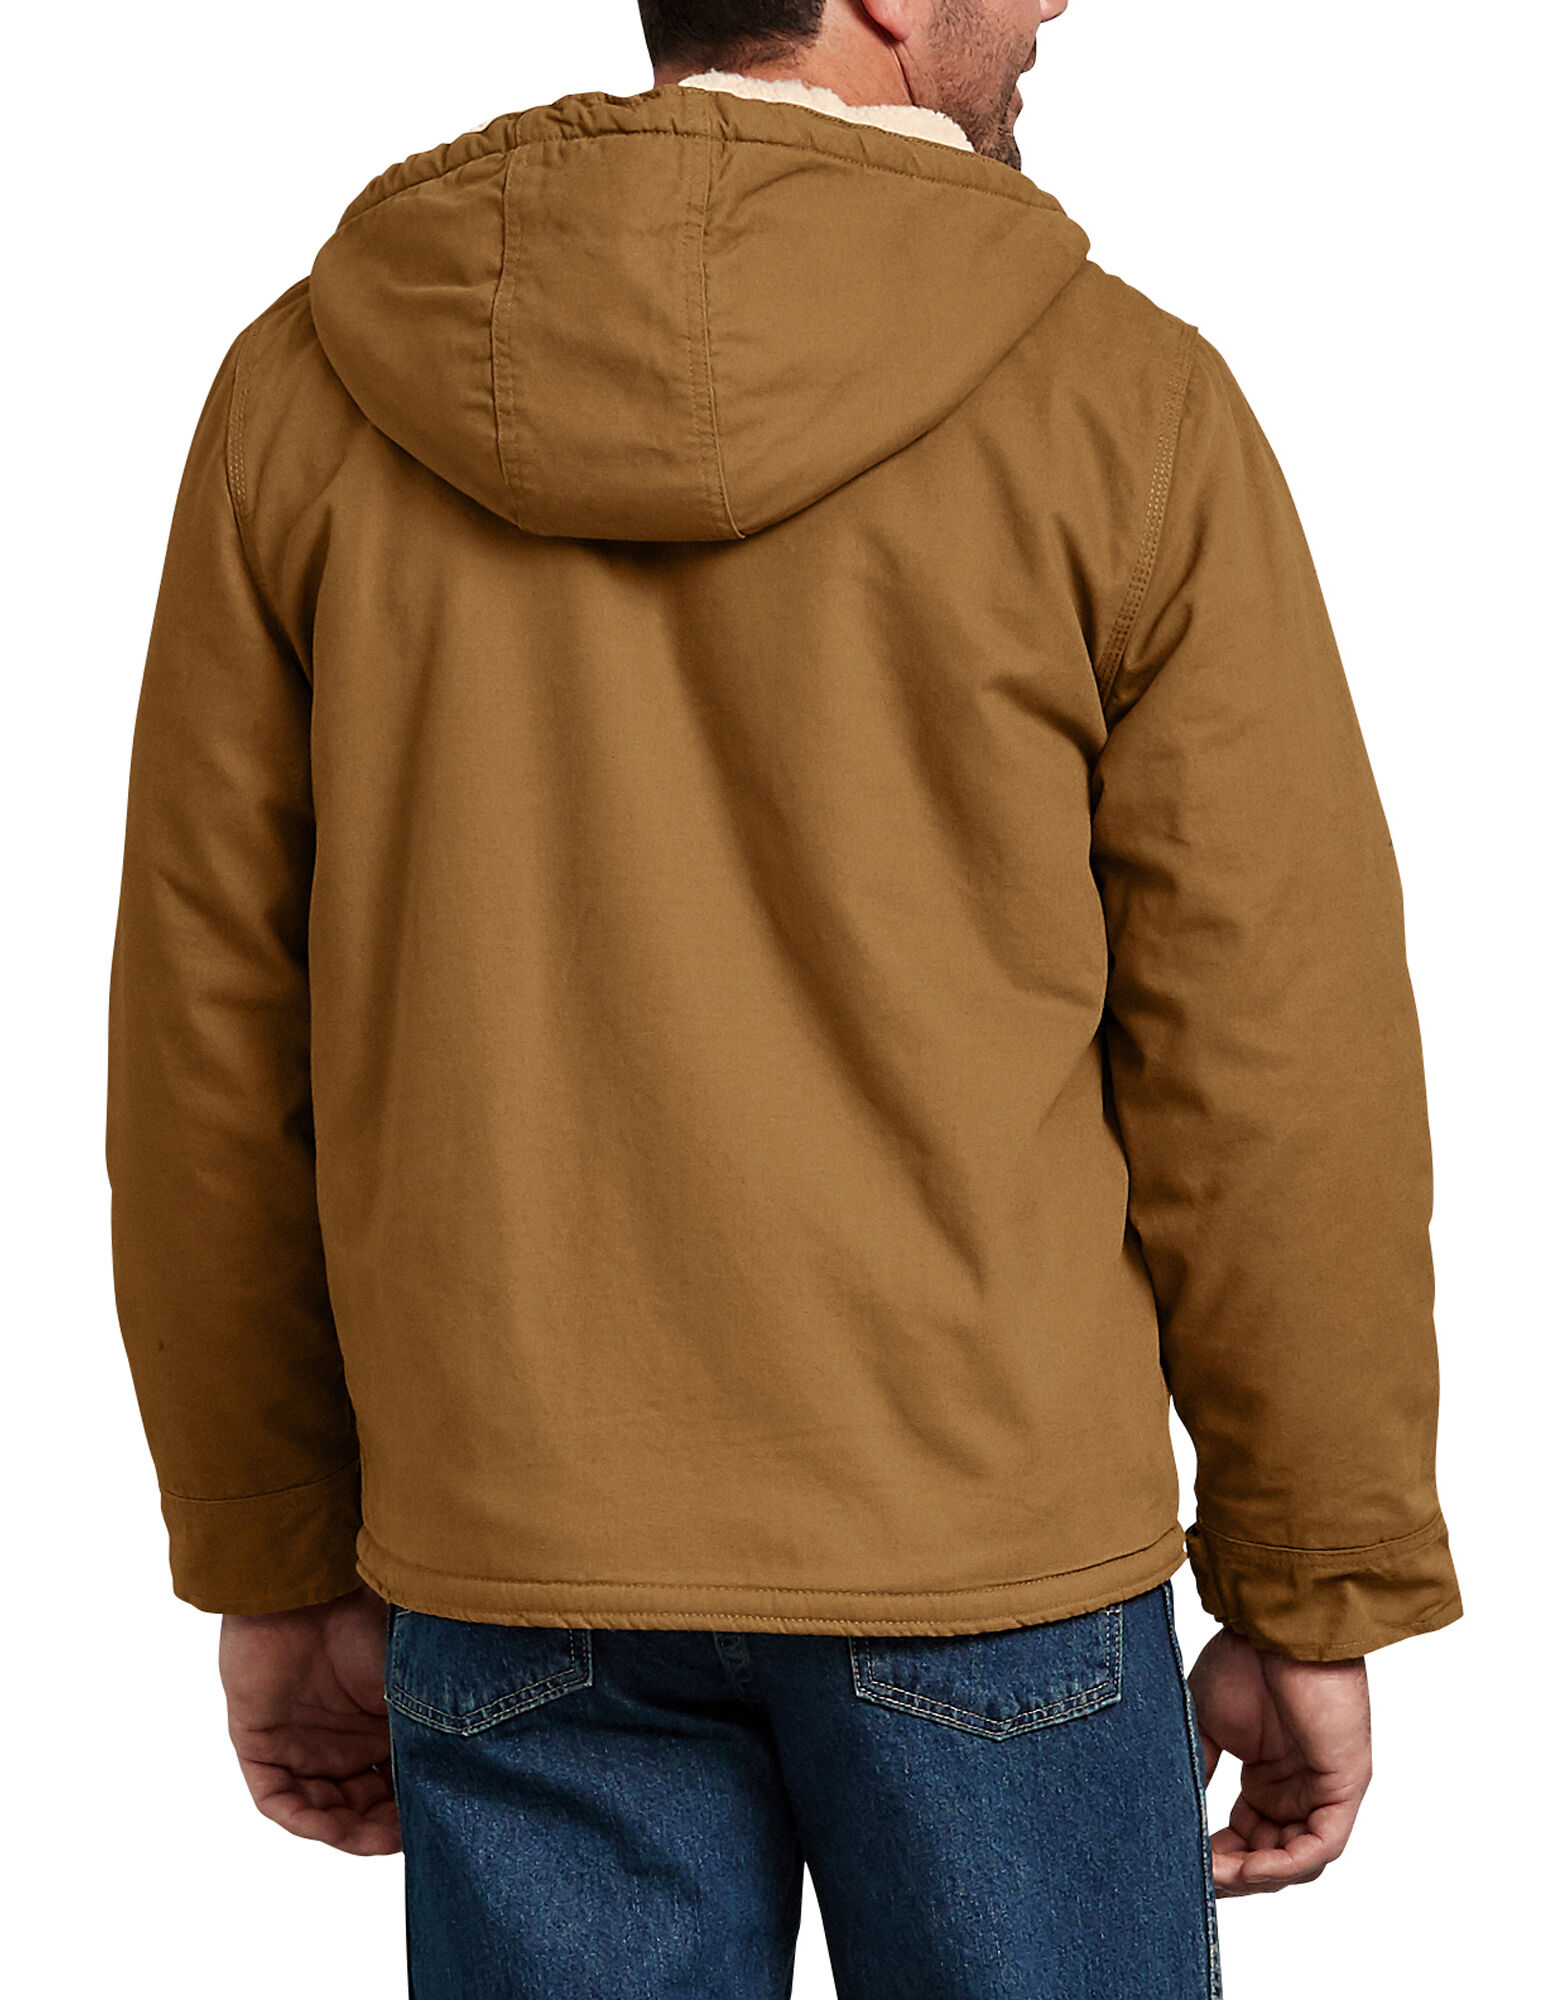 2f9339684ed0 ... Duck Sherpa Lined Hooded Jacket - Brown Duck ...